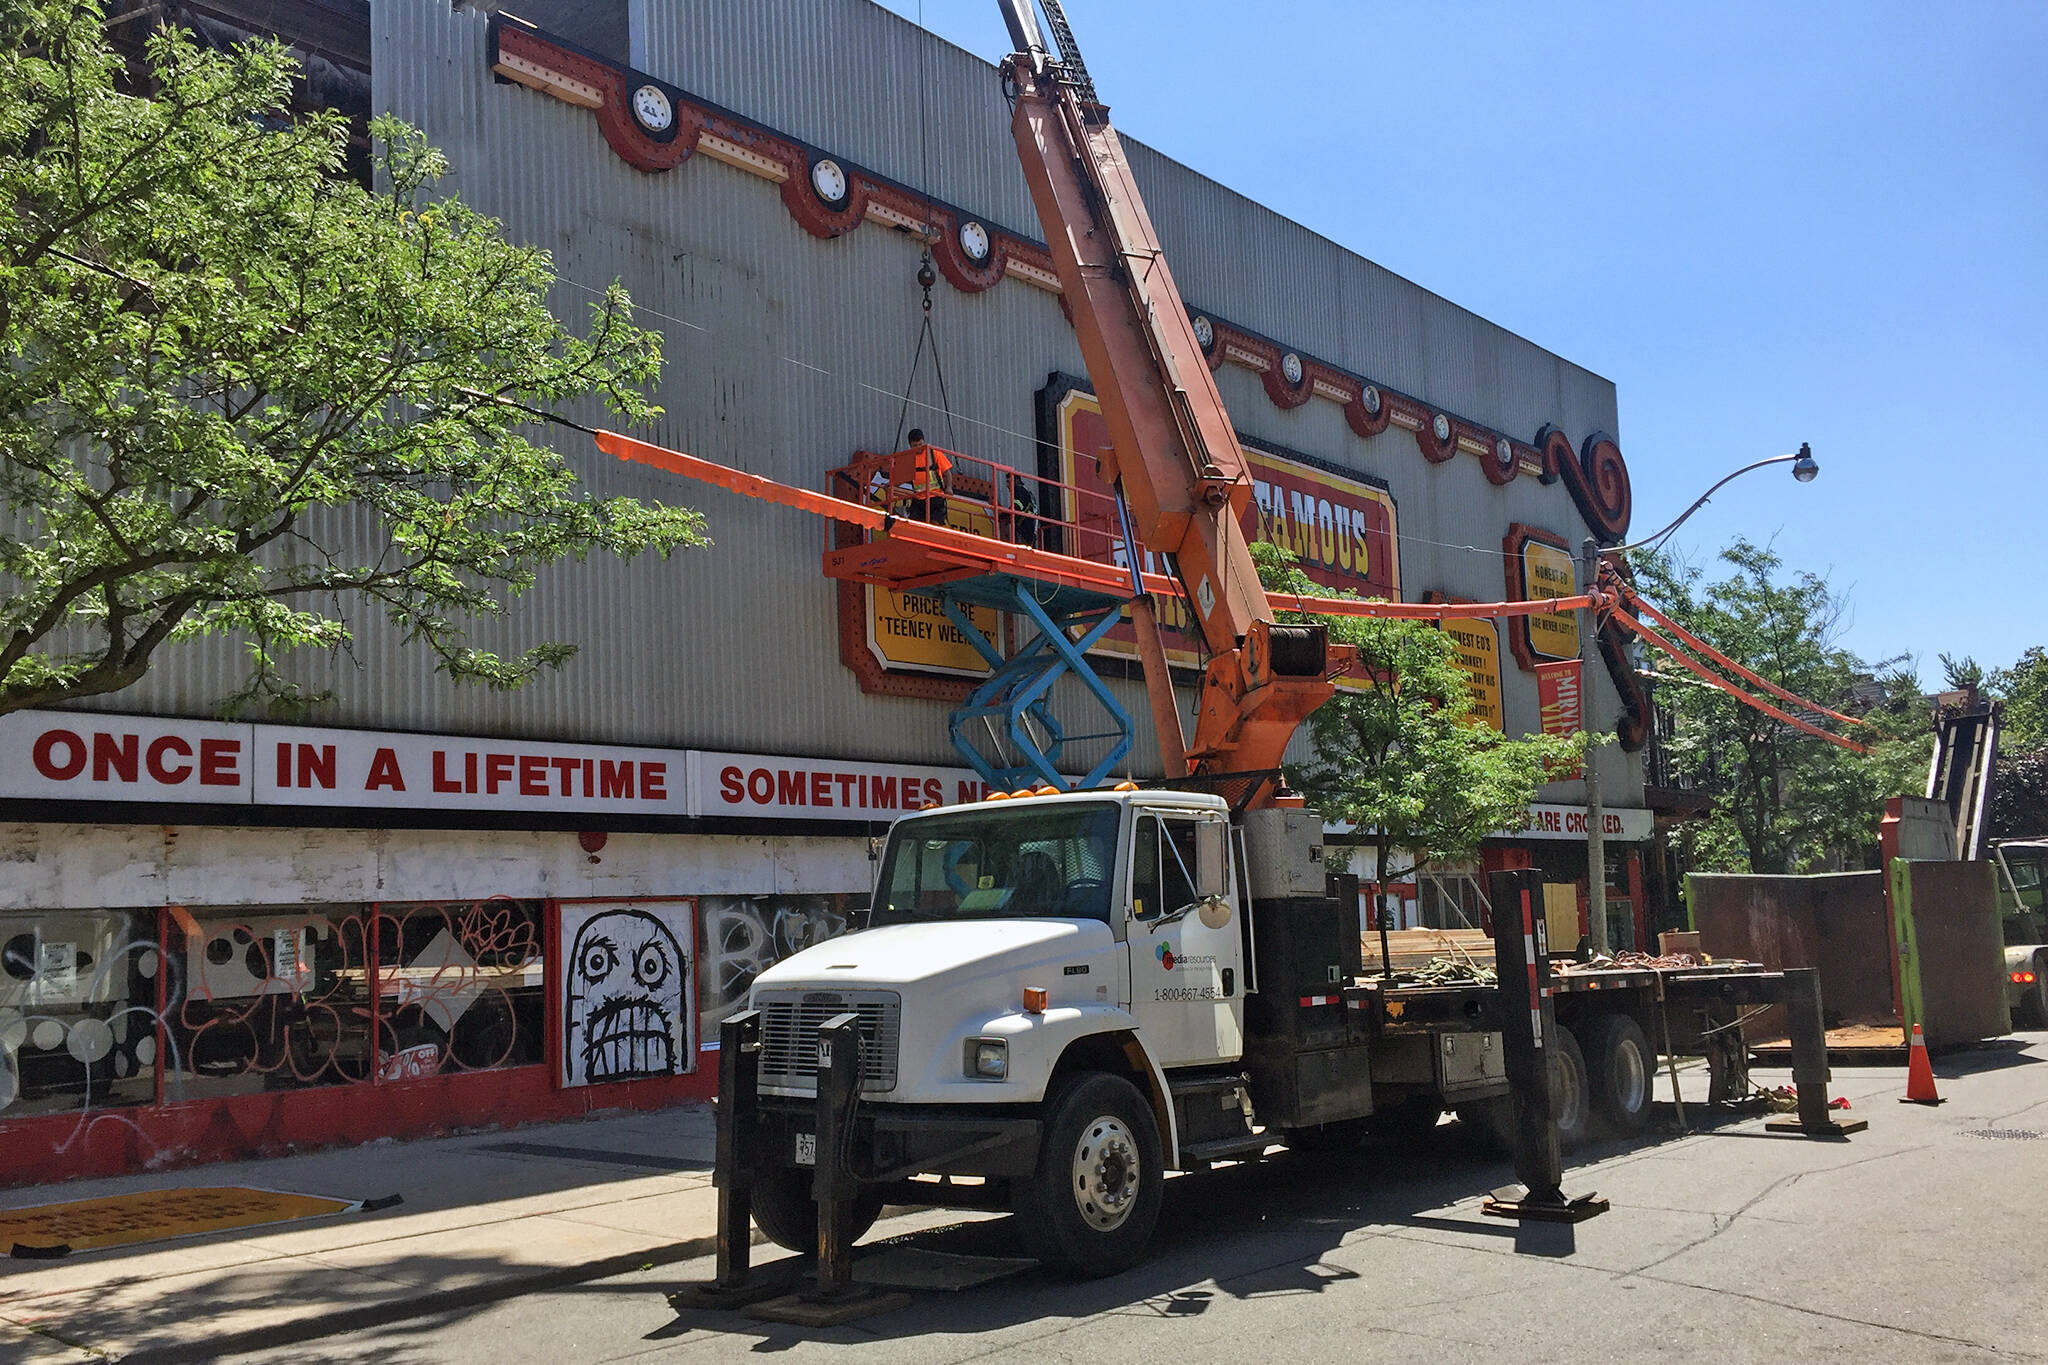 honest eds sign removed